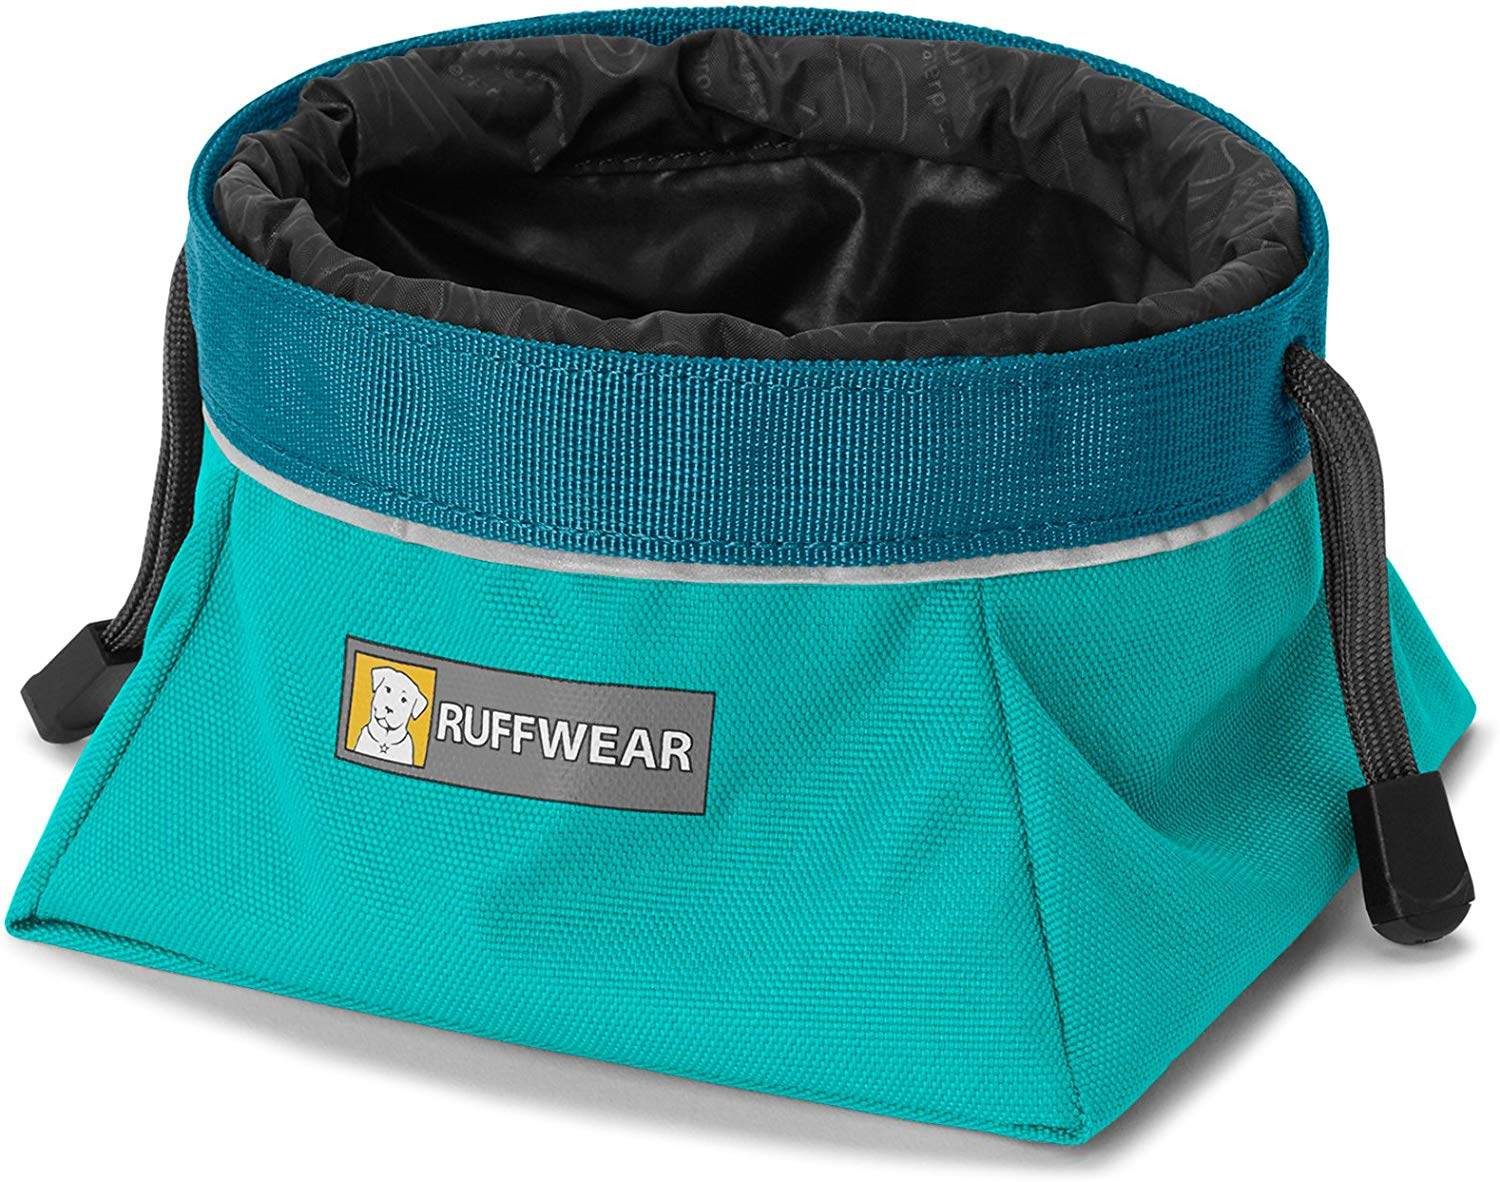 Ruffwear Quencher Cinch Top Food & Water Dog Bowl, Meltwater Teal, Large